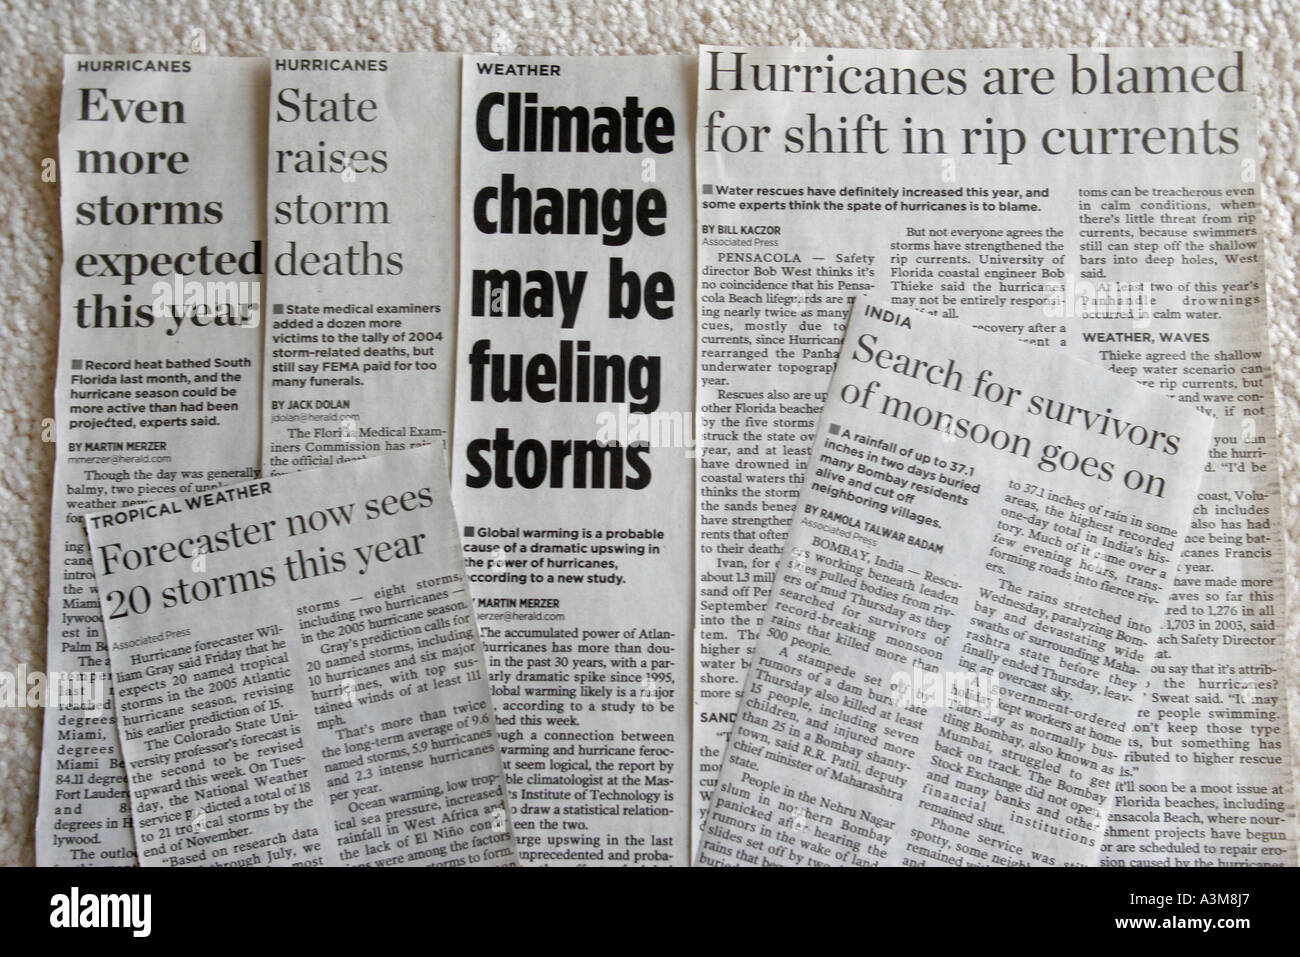 miami florida herald news clippings climate change weather miami florida herald news clippings climate change weather hurricanes global warming